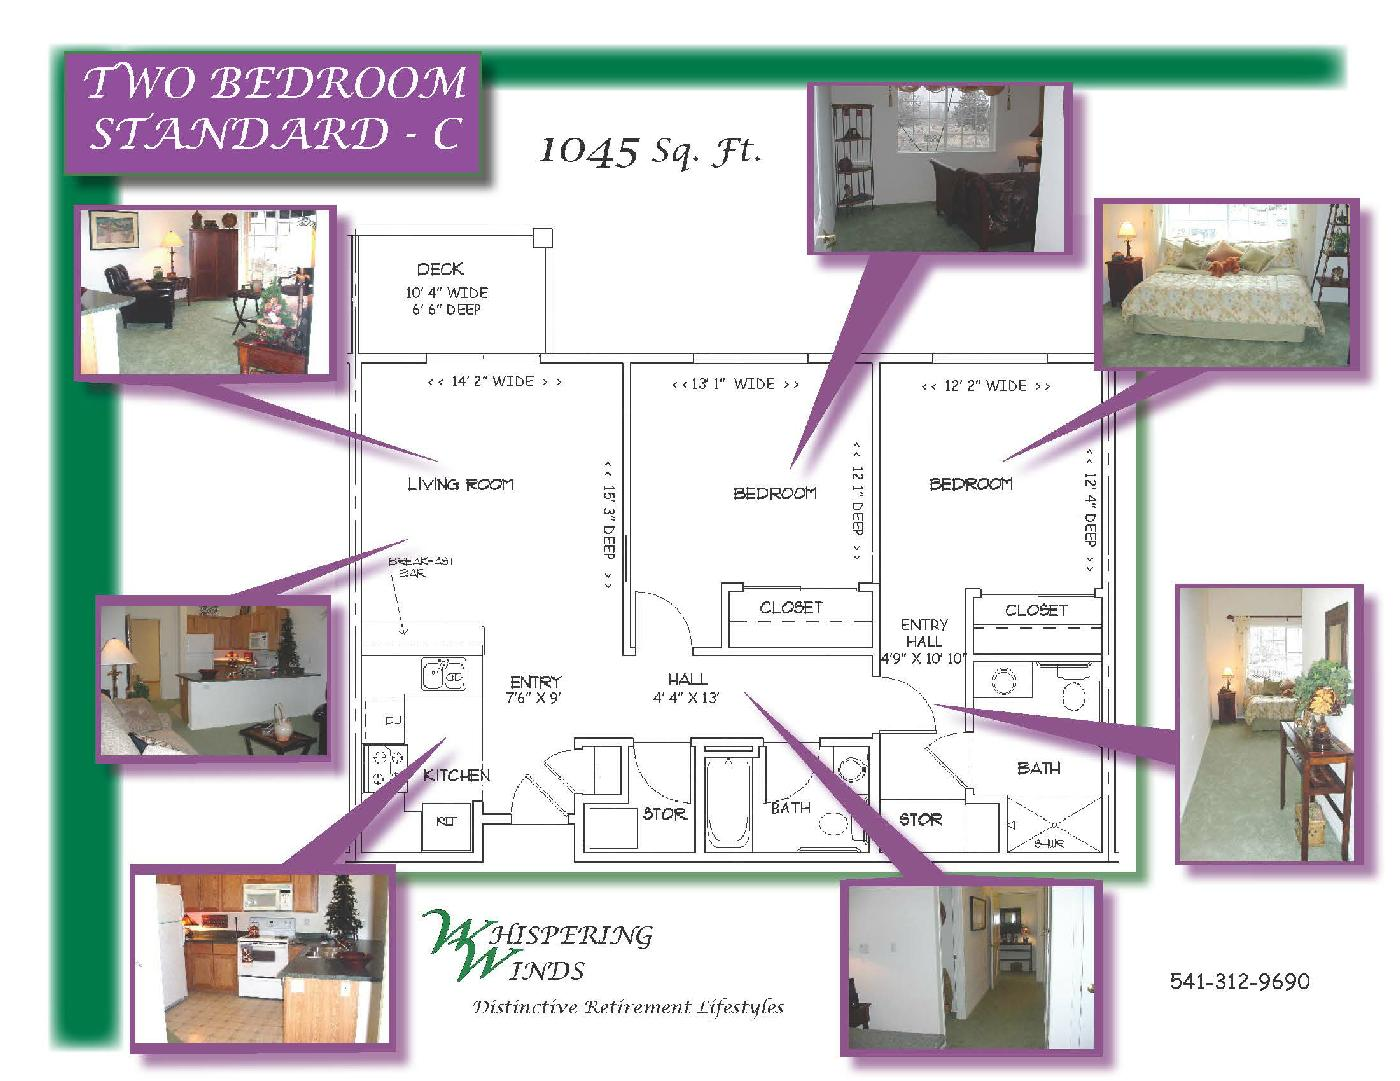 Layout Example - Two Bedroom Standard - C